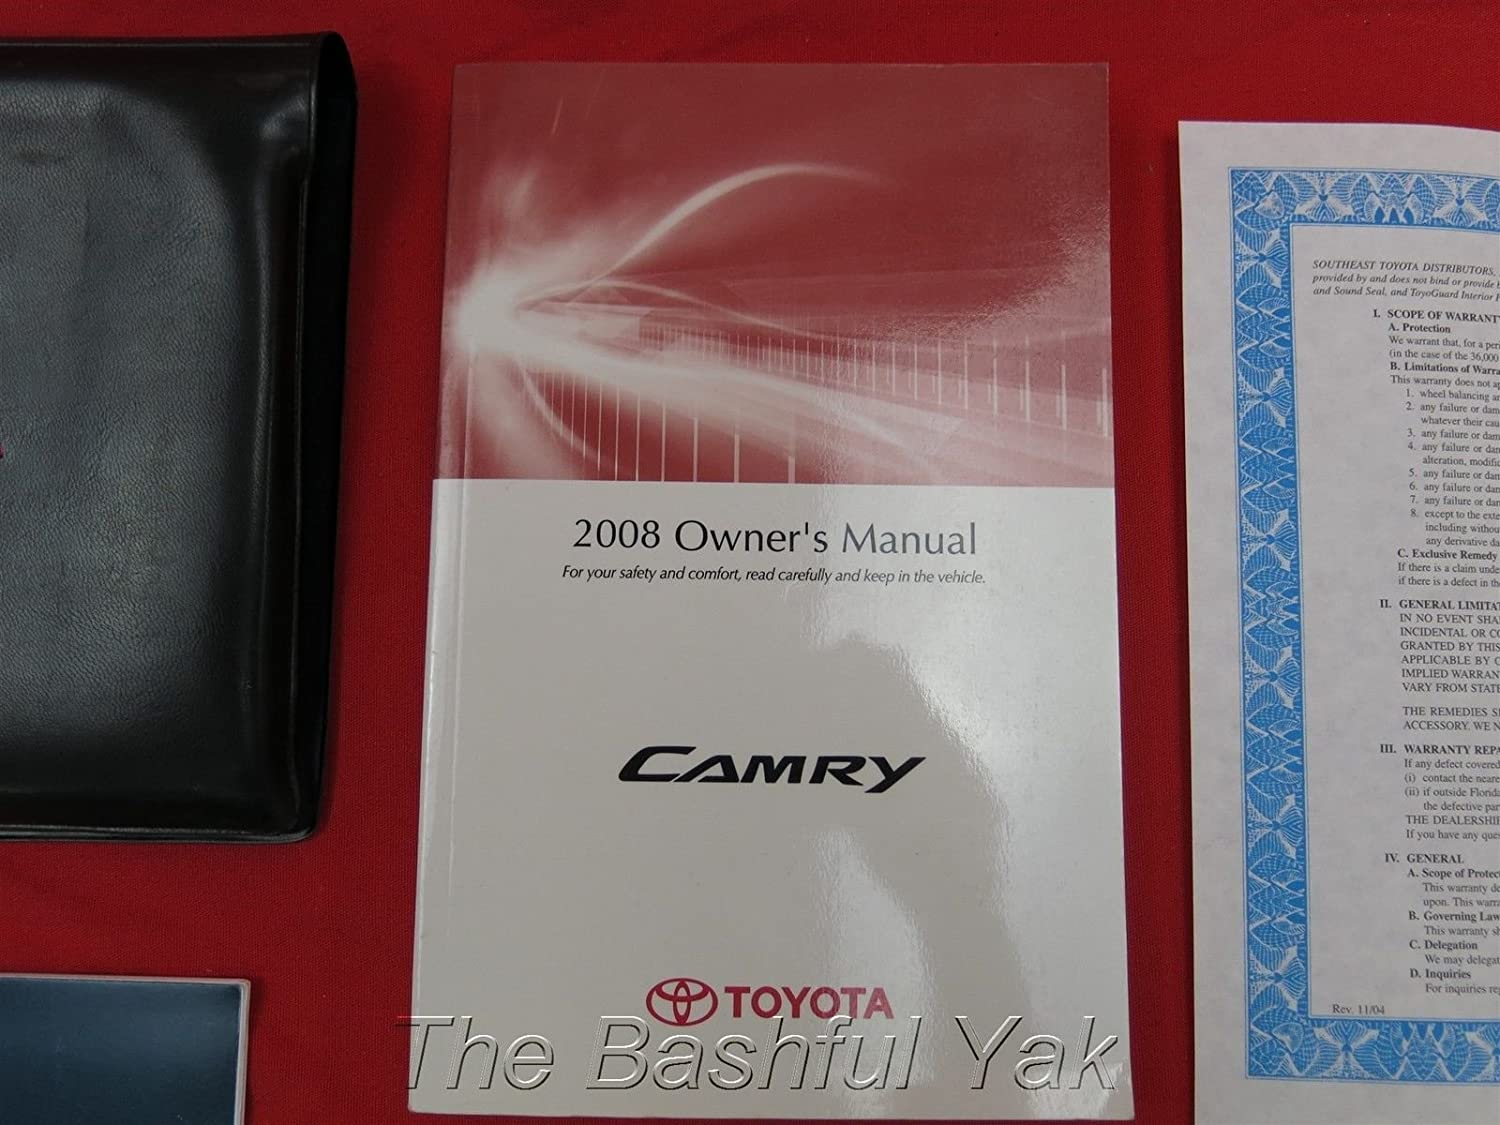 Manualguide 2008 Sienna Fuse Box Diagram Toyota Camry Rh Whizenterprise Co Uk